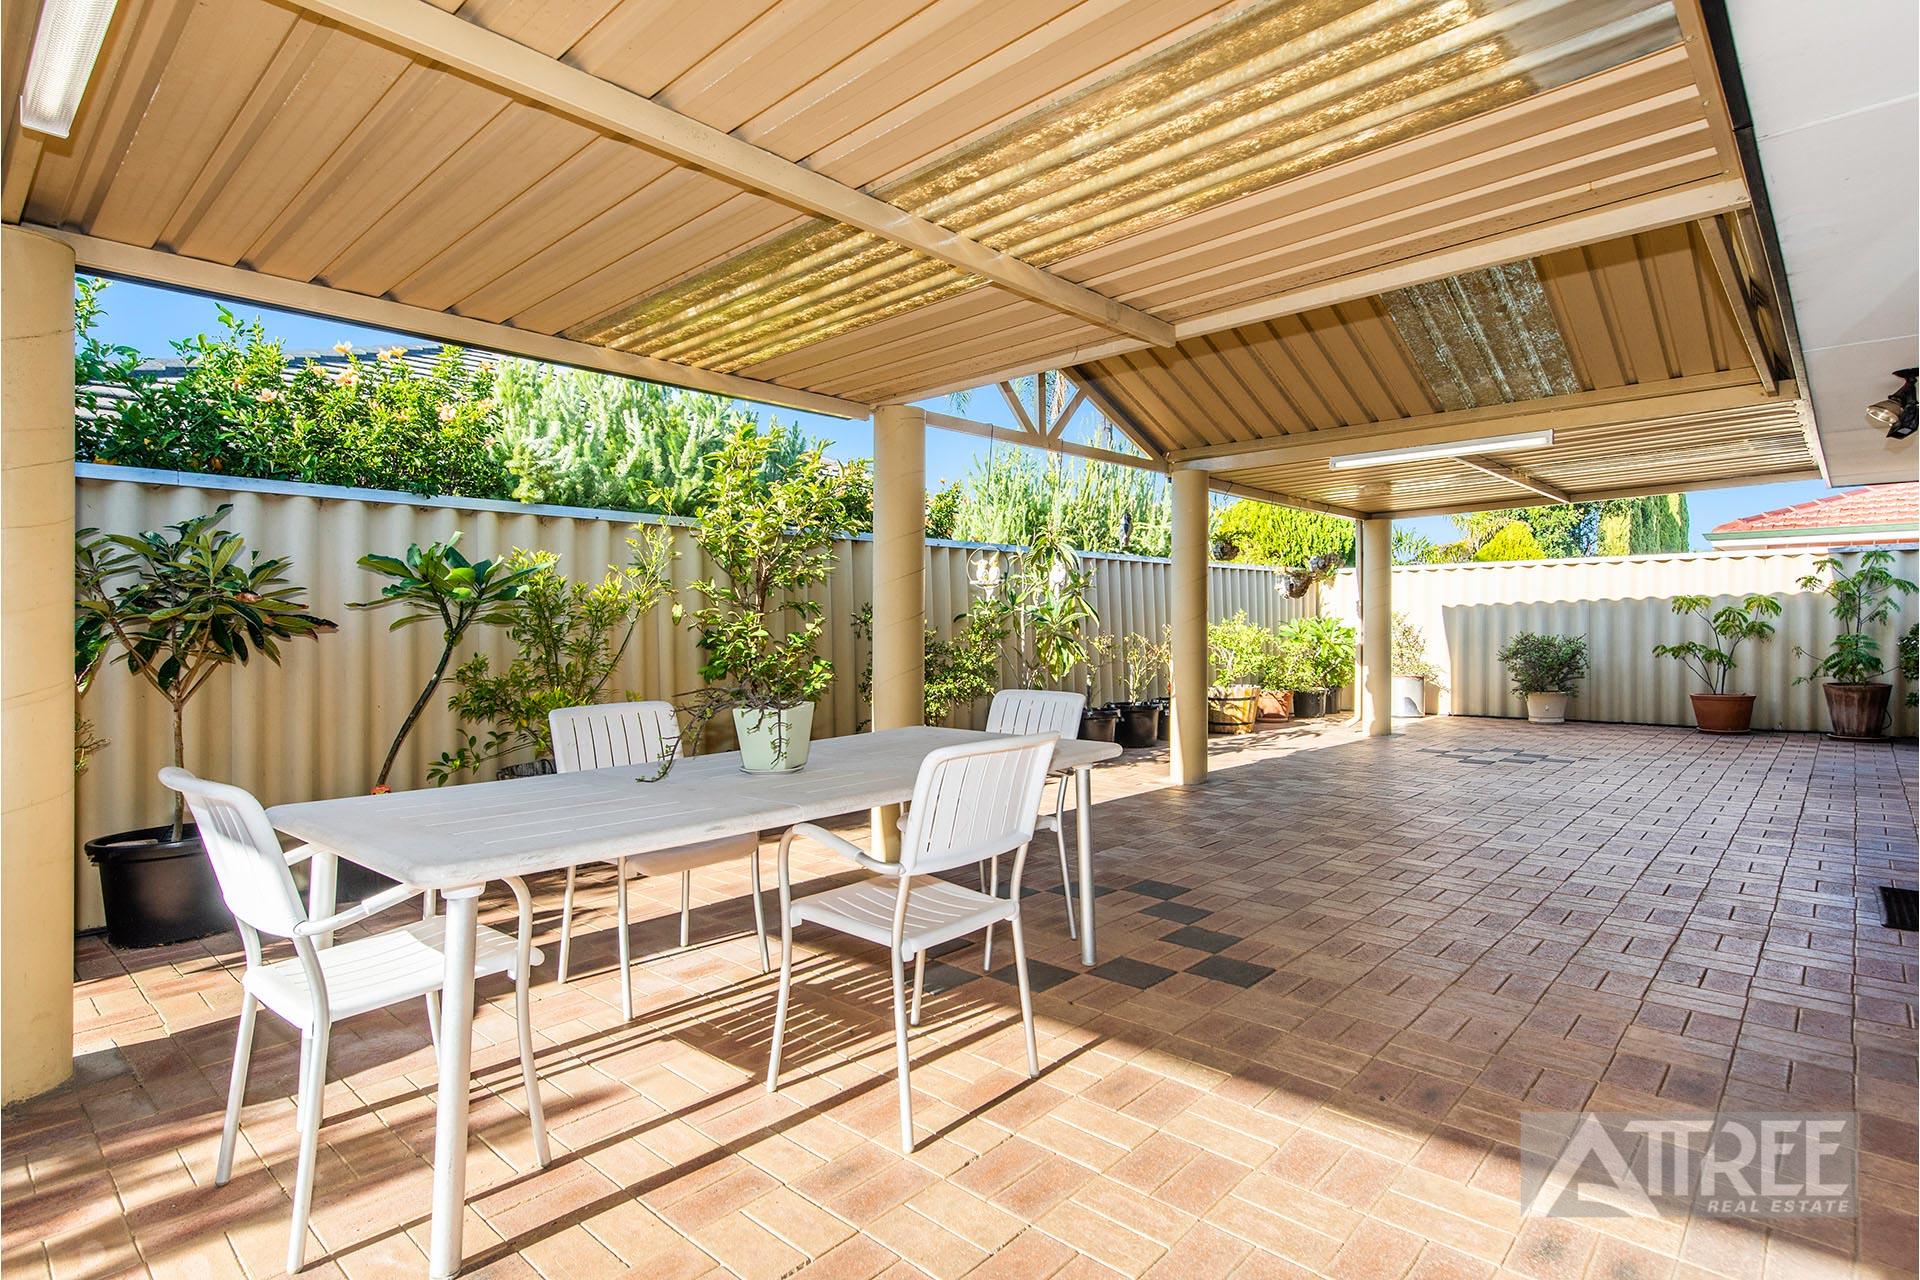 Property for sale in CANNING VALE, 14 Castleton Way : Attree Real Estate